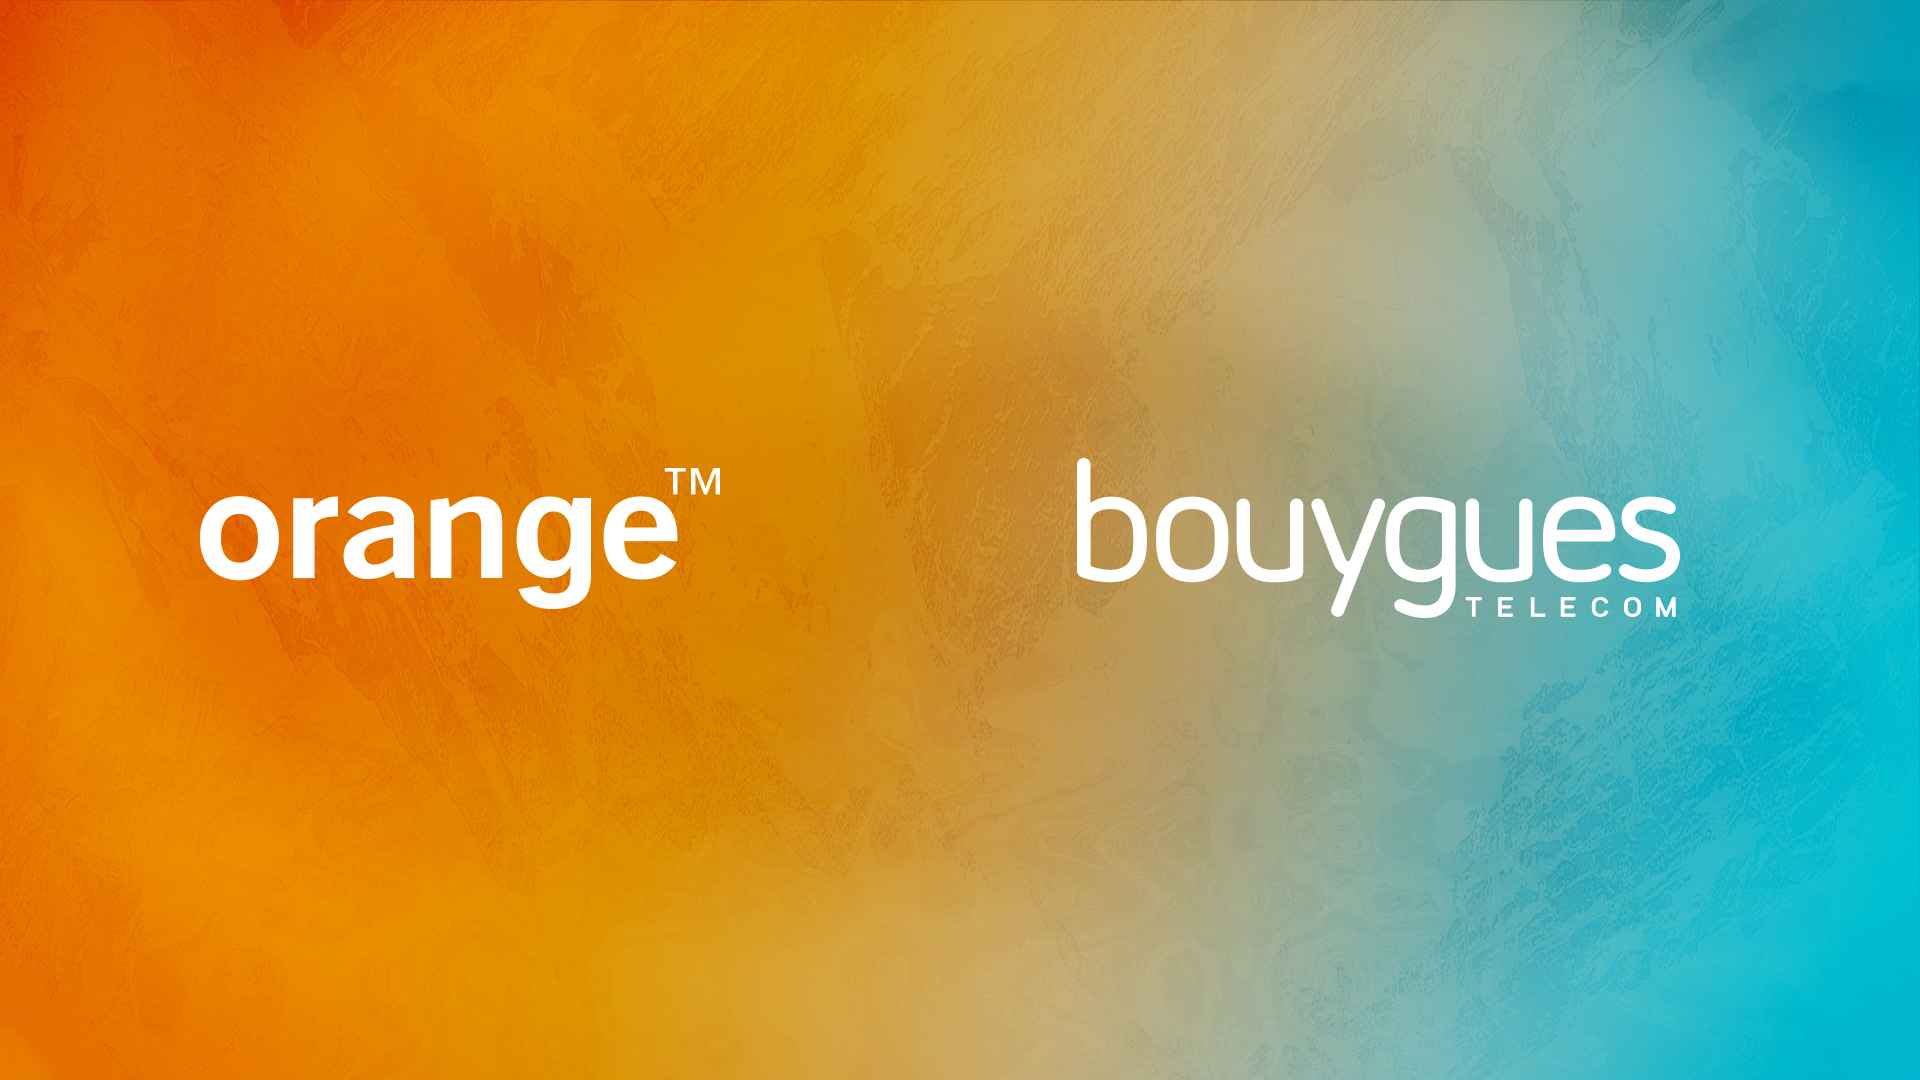 logo orange bouygues rachat